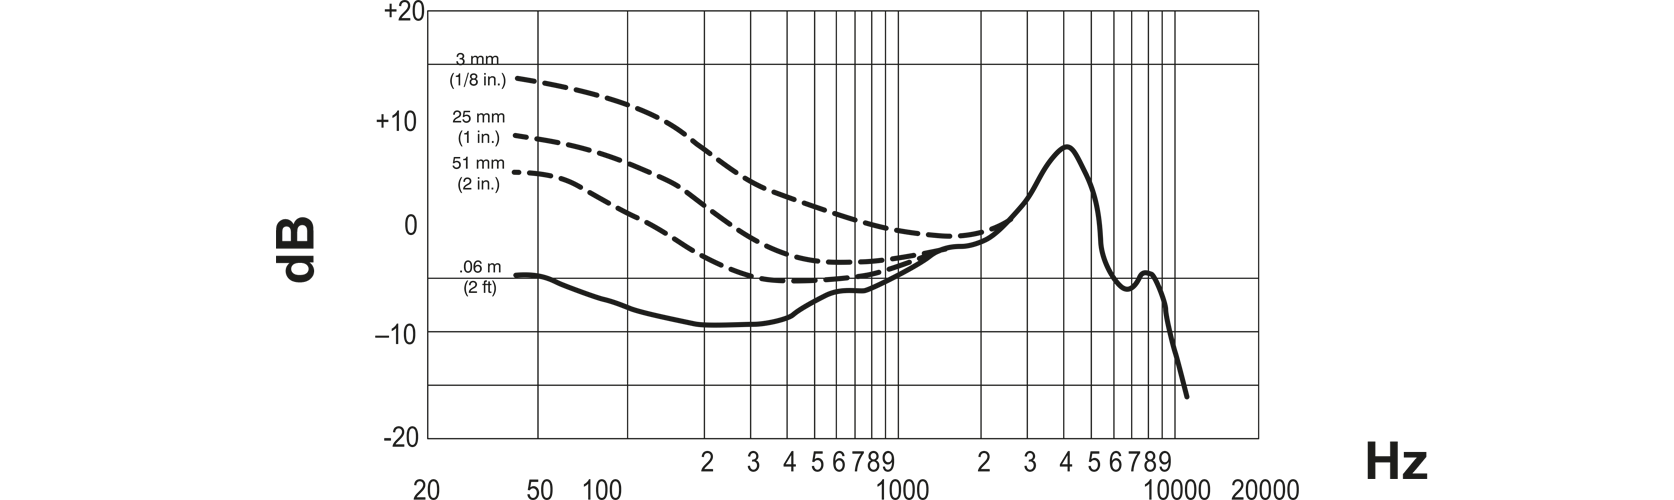 Shure Beta 52A Kick Drum Microphone Frequency Response Curve Image